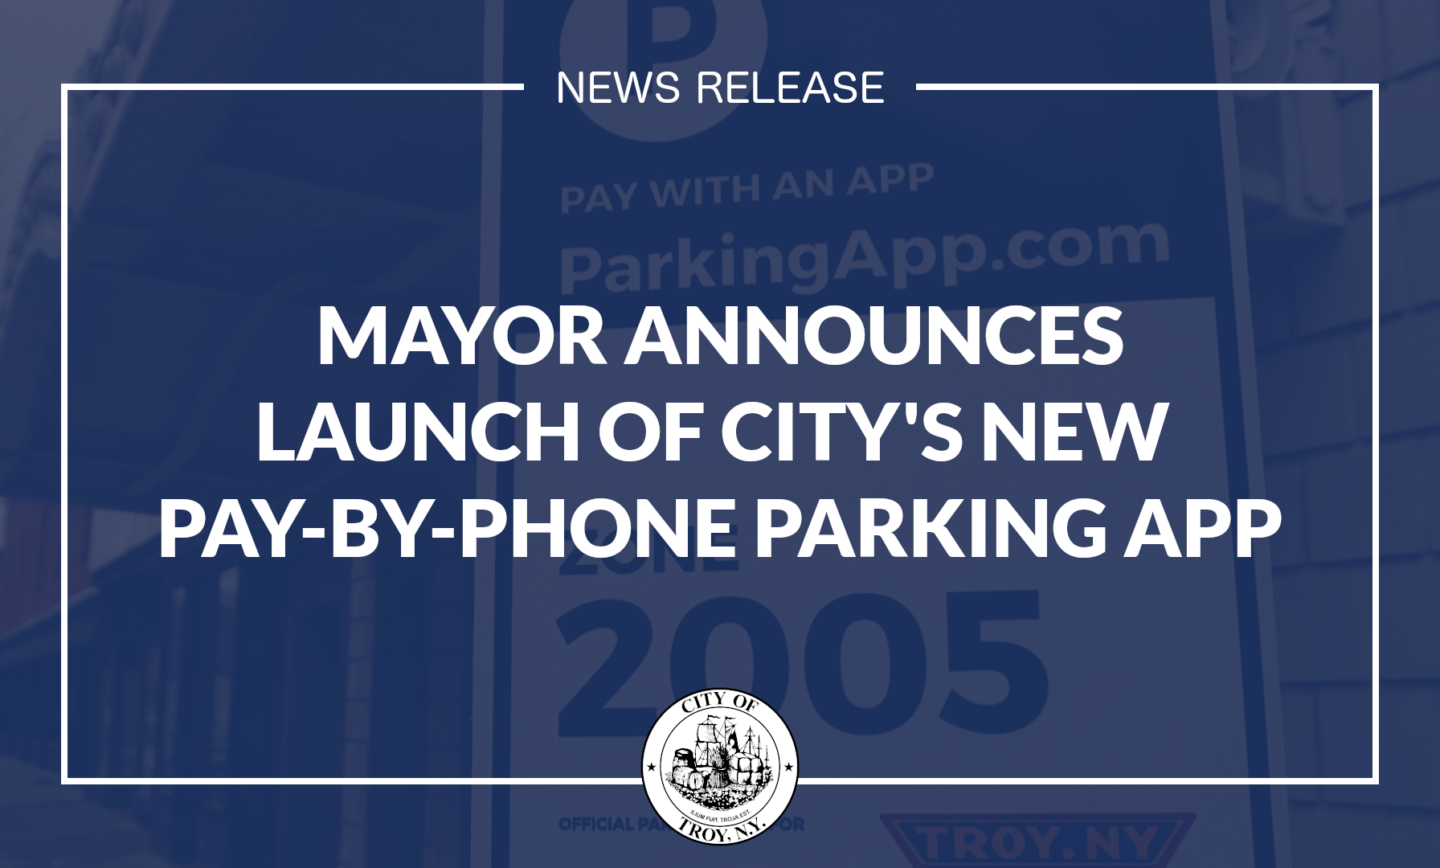 Mayor Announces Launch of City's Mobile Parking App